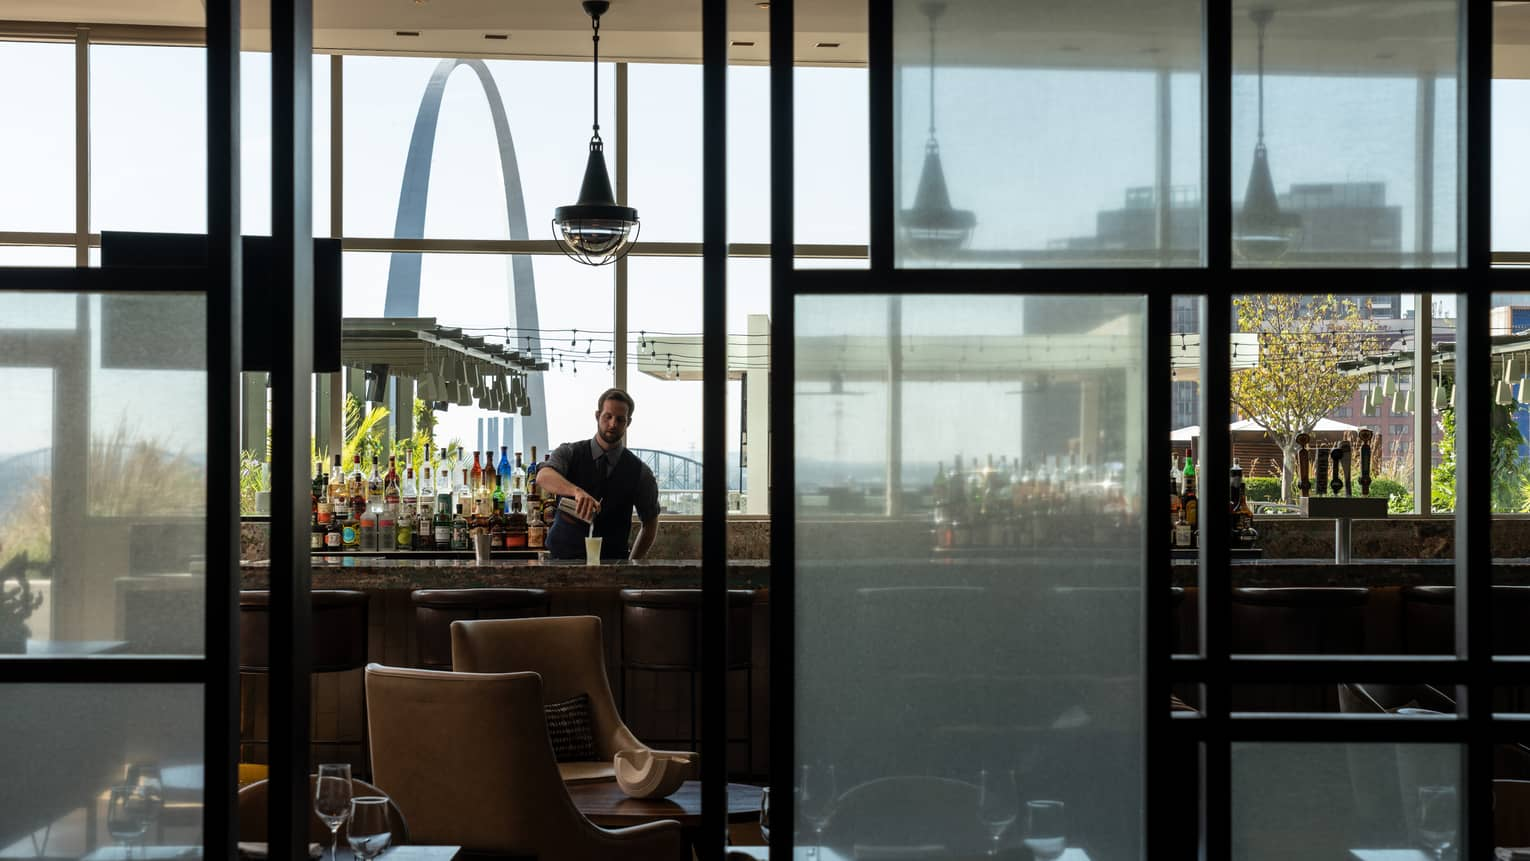 Looking through glass windows at cinderhouse reveals a bartender shaking up a drink at the bar